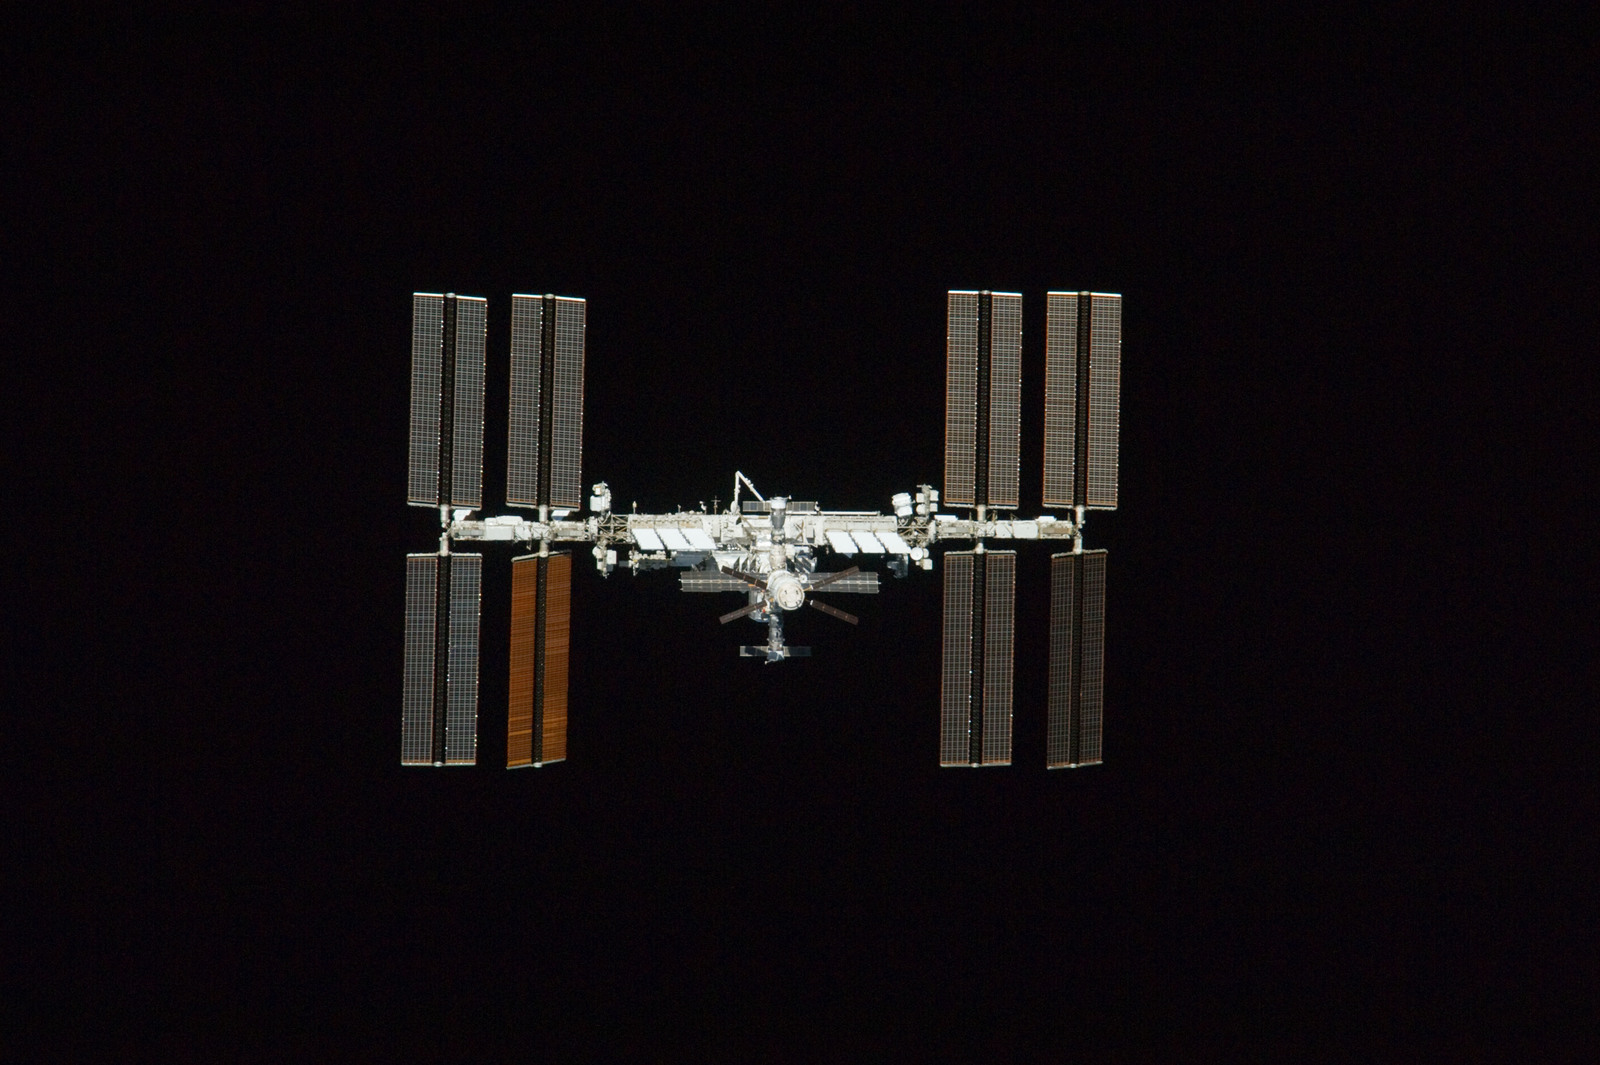 S134E011054 - STS-134 - Overall view of ISS